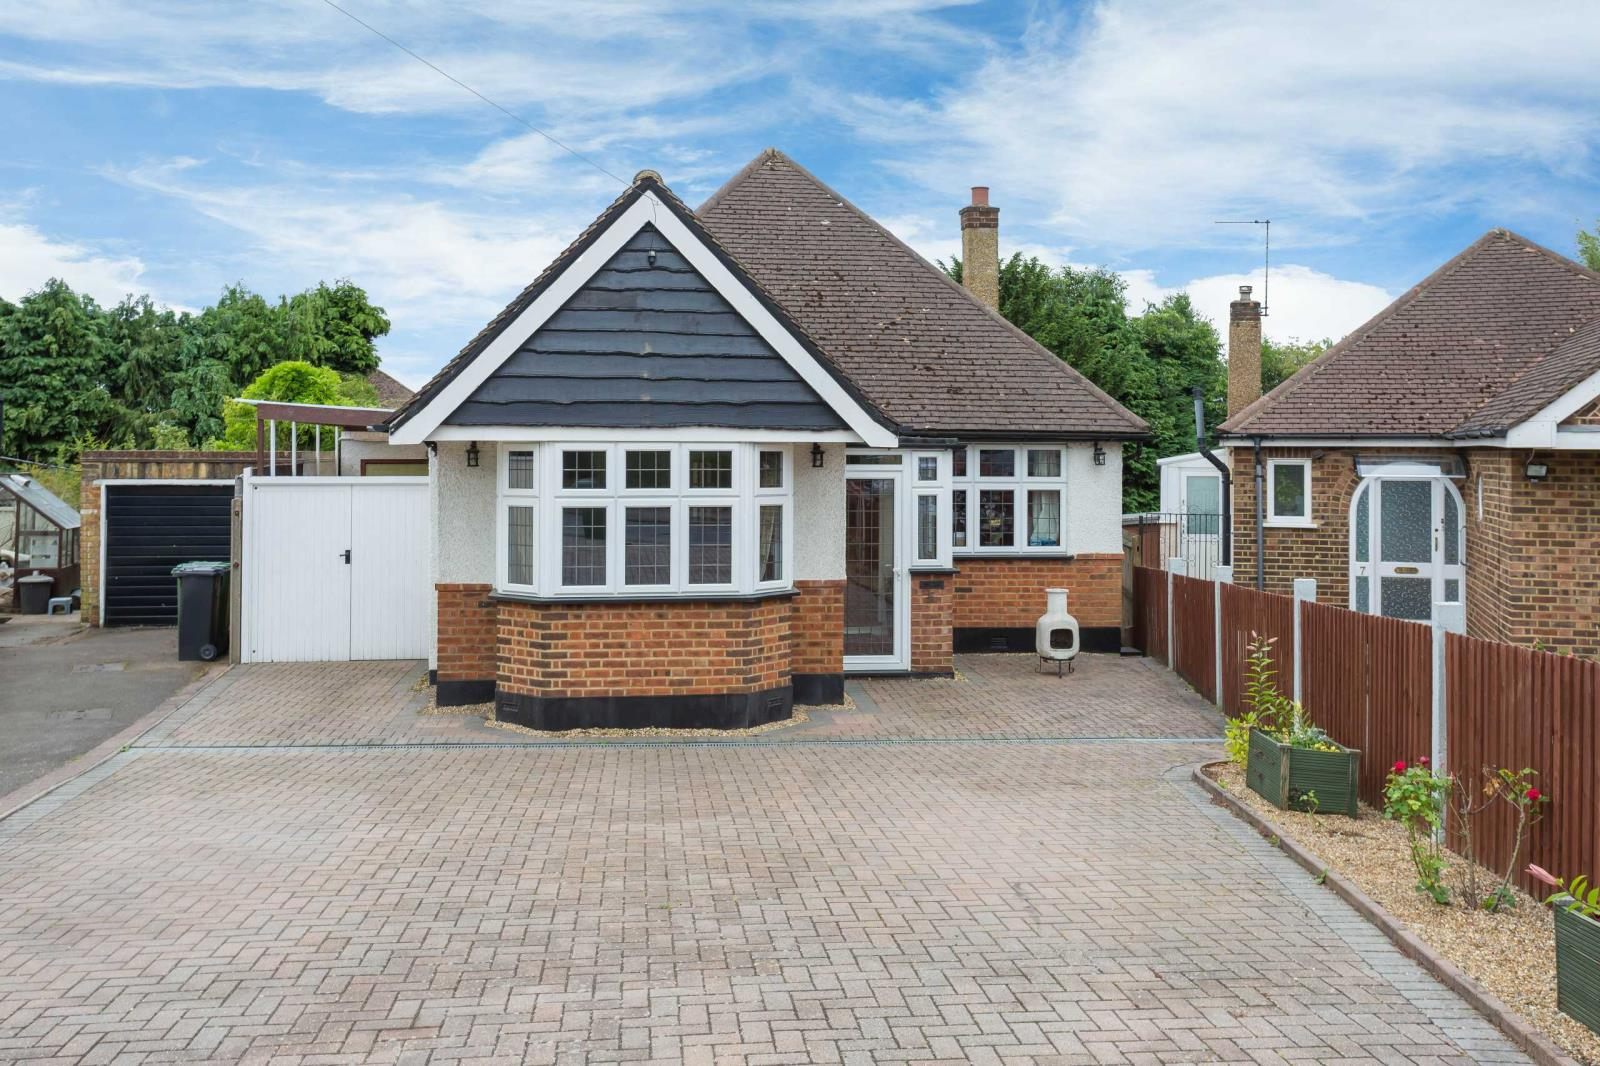 3 Bedrooms Detached Bungalow for sale in Strangeways, Watford, Hertfordshire, WD17